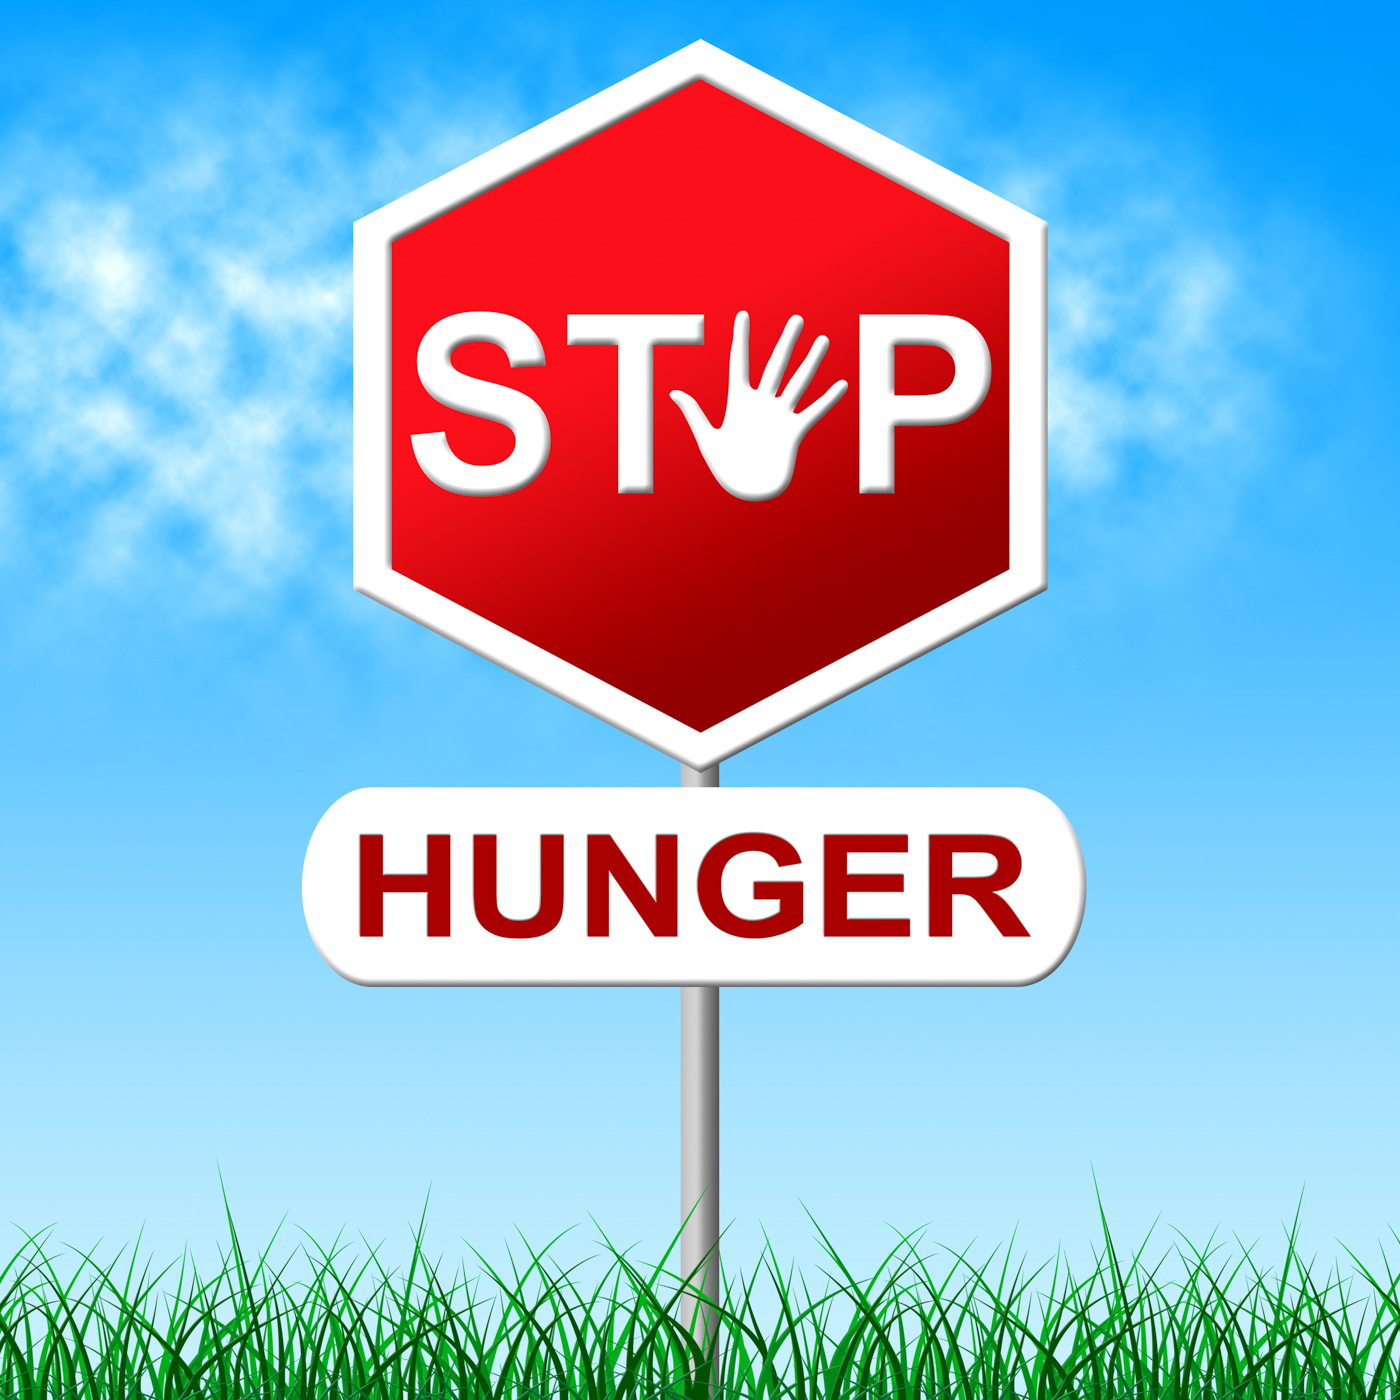 Stop hunger represents lack of food and caution photo